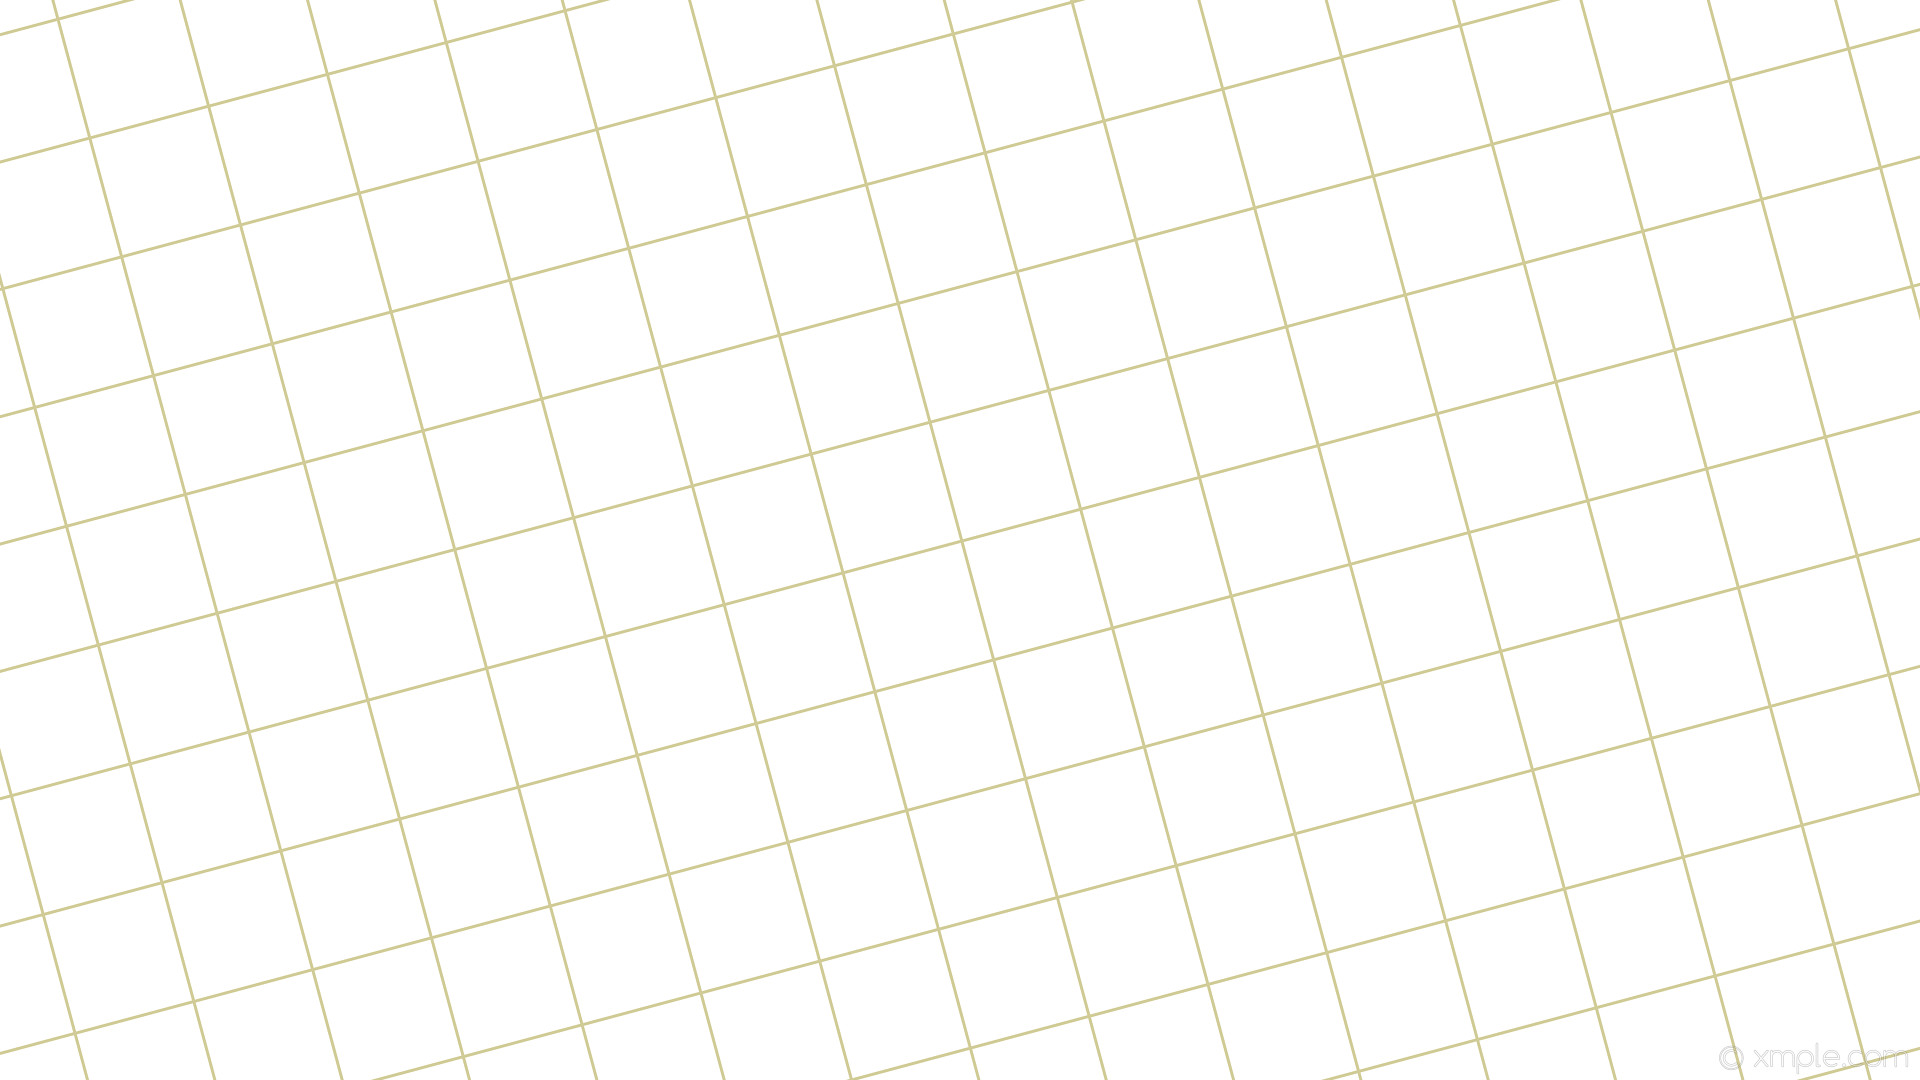 1920x1080 wallpaper graph paper yellow white grid dark khaki #ffffff #bdb76b 15° 3px  123px